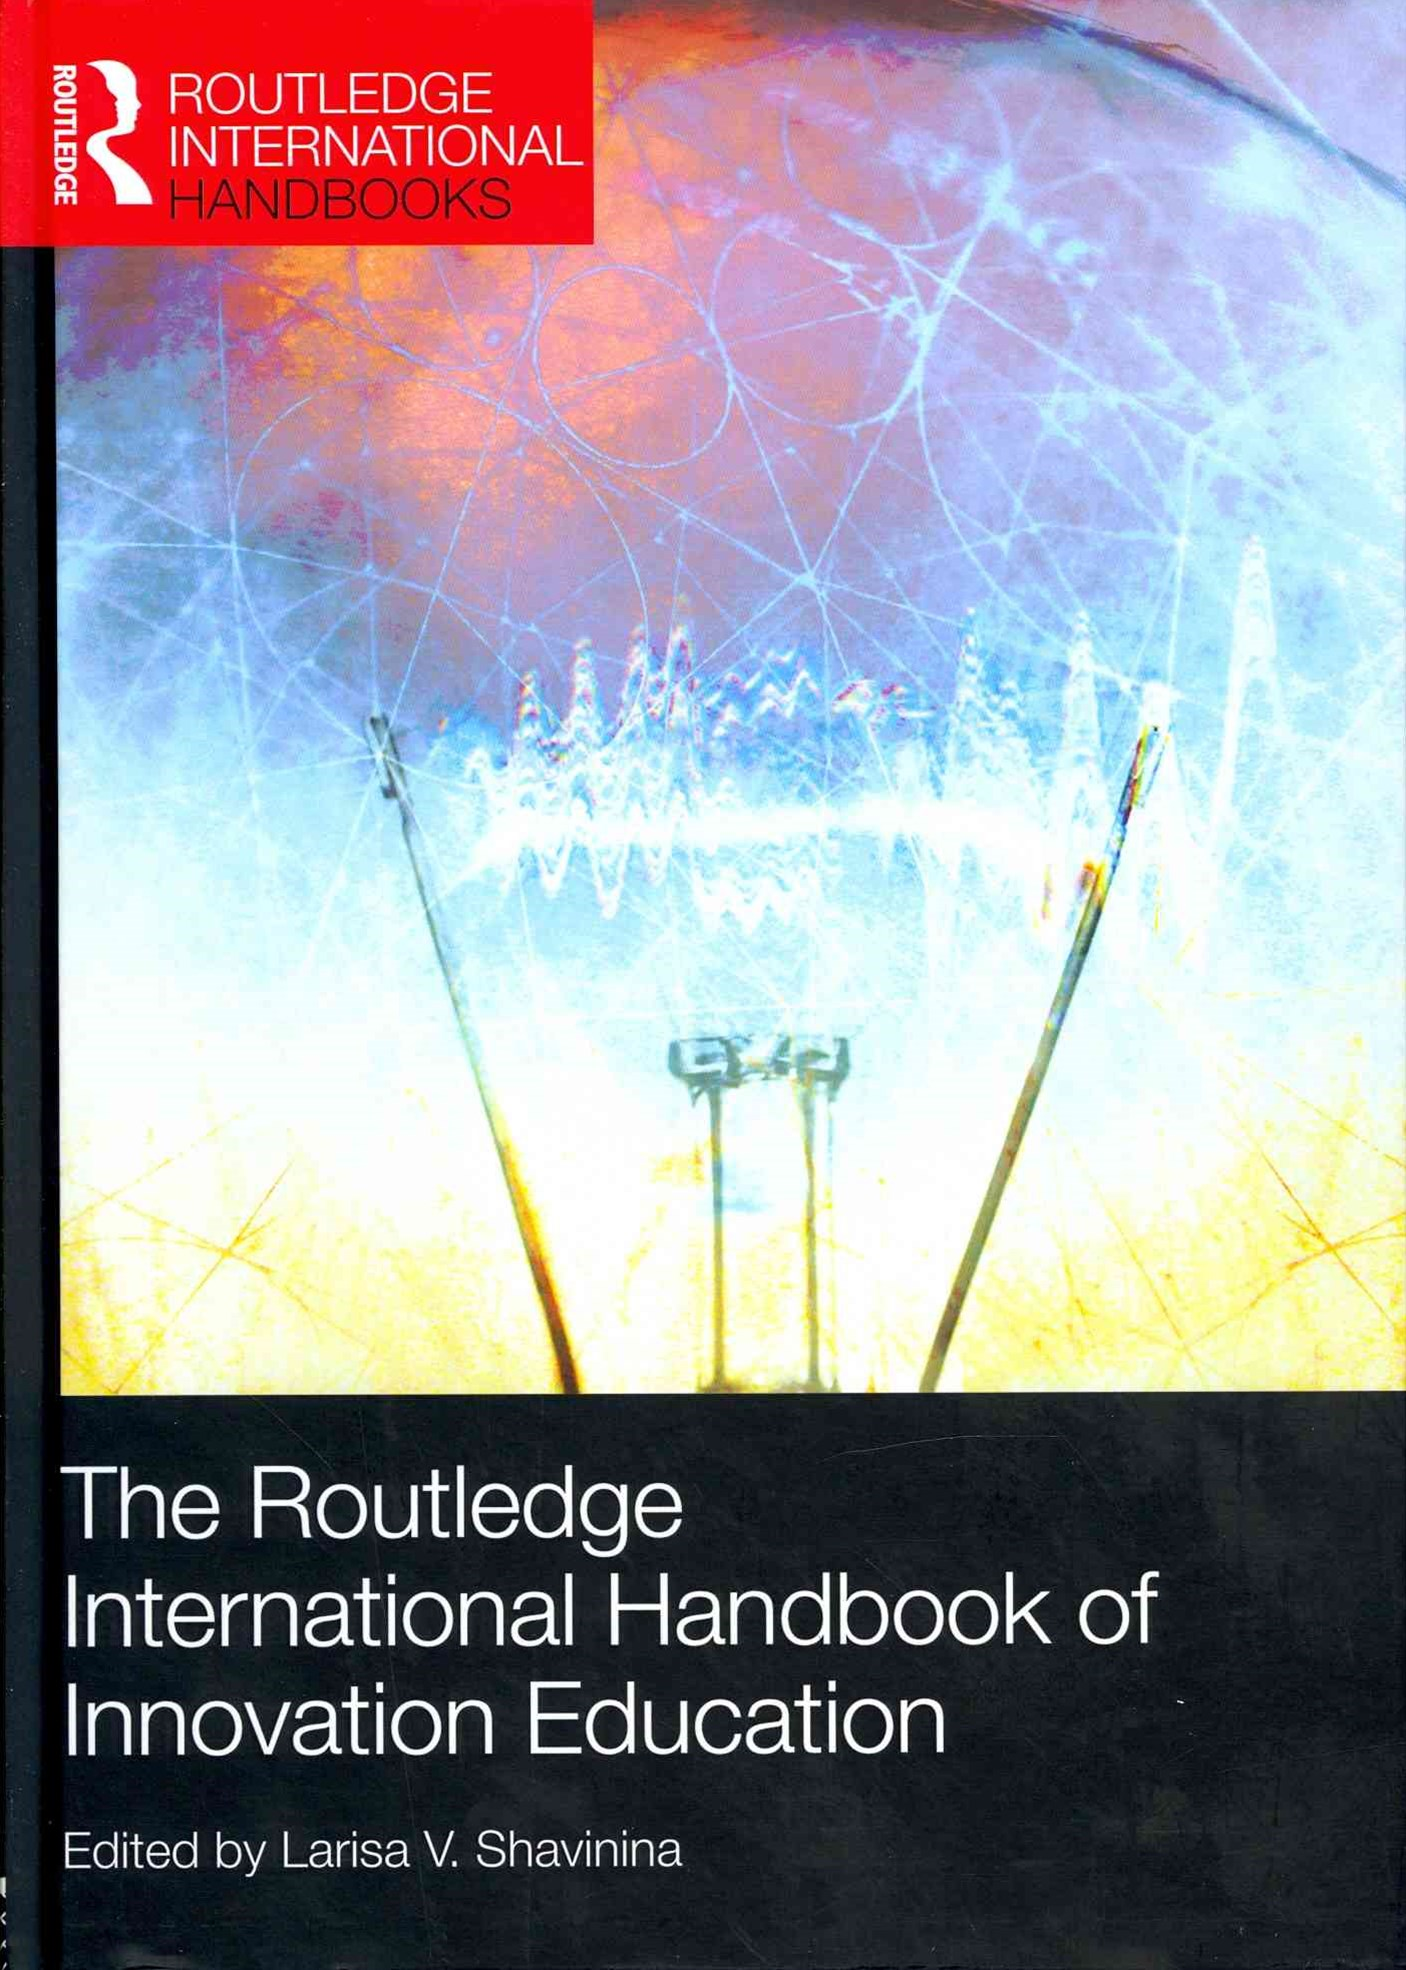 Routledge International Handbook of Innovation Education